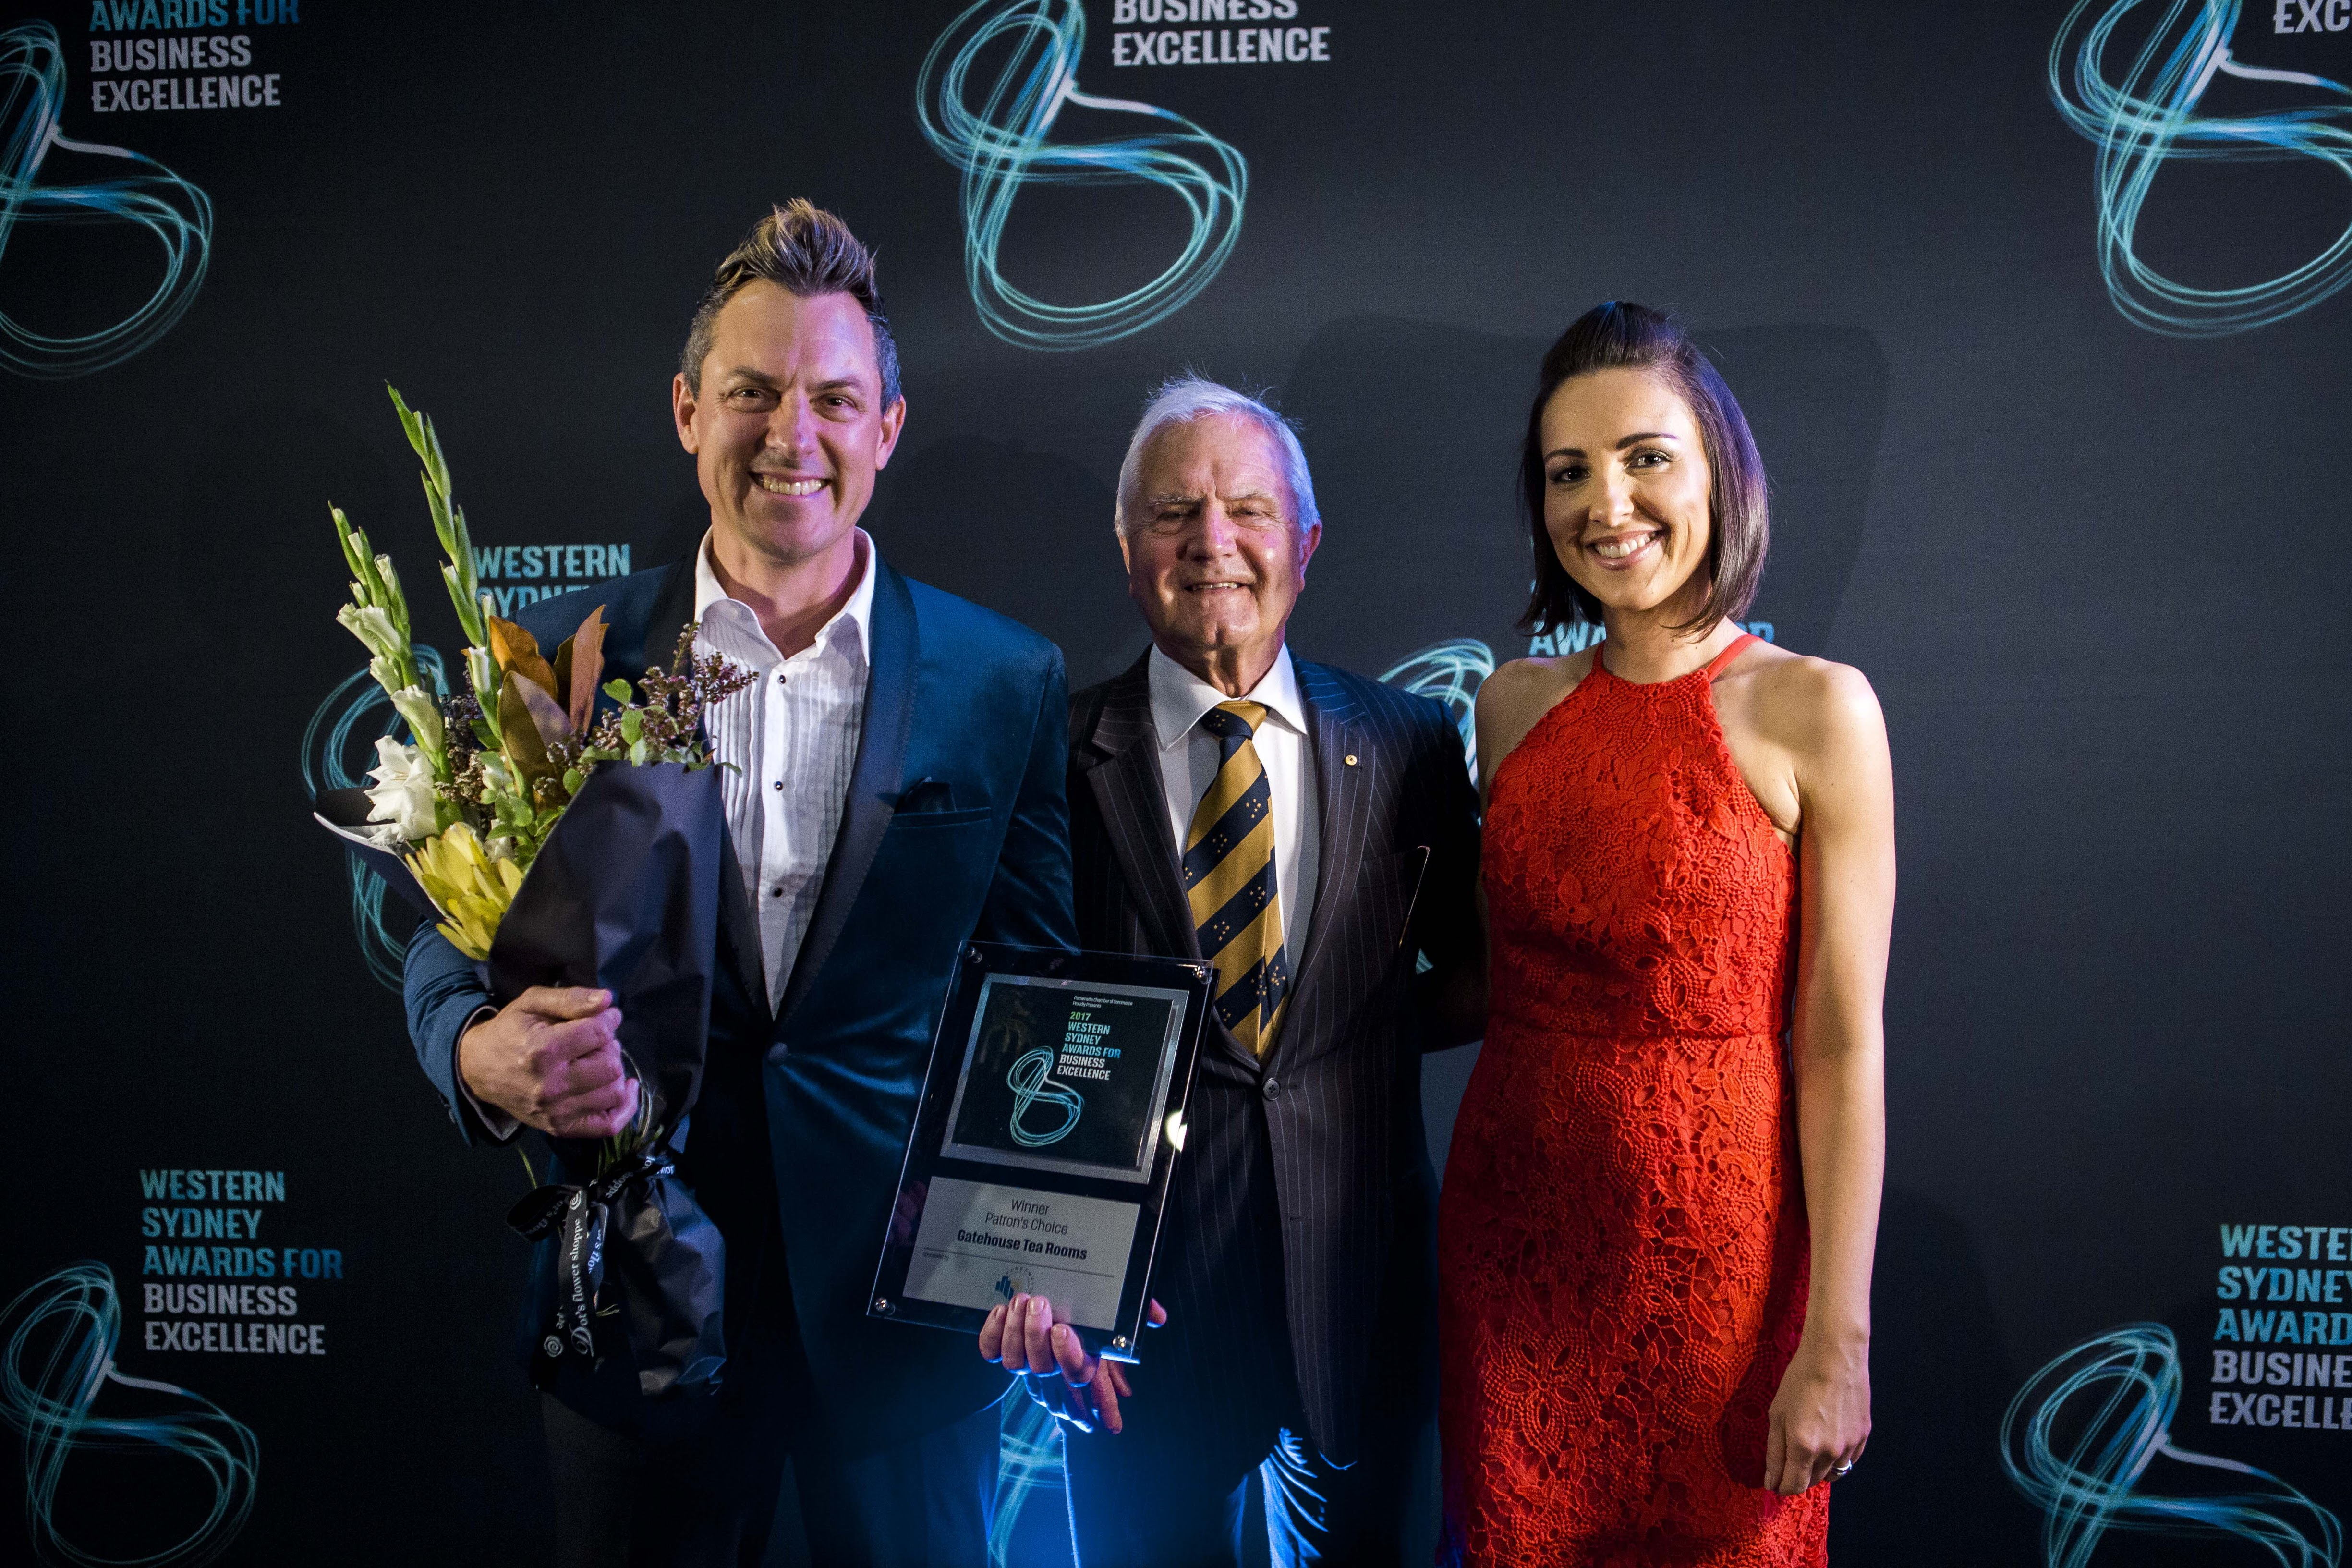 WESTERN SYDNEY AWARDS FOR BUSINESS EXCELLENCE, WINNER OF PATRON'S CHOICE AWARD FOR OUTSTANDING BUSINESS ACHIEVEMENT 2017